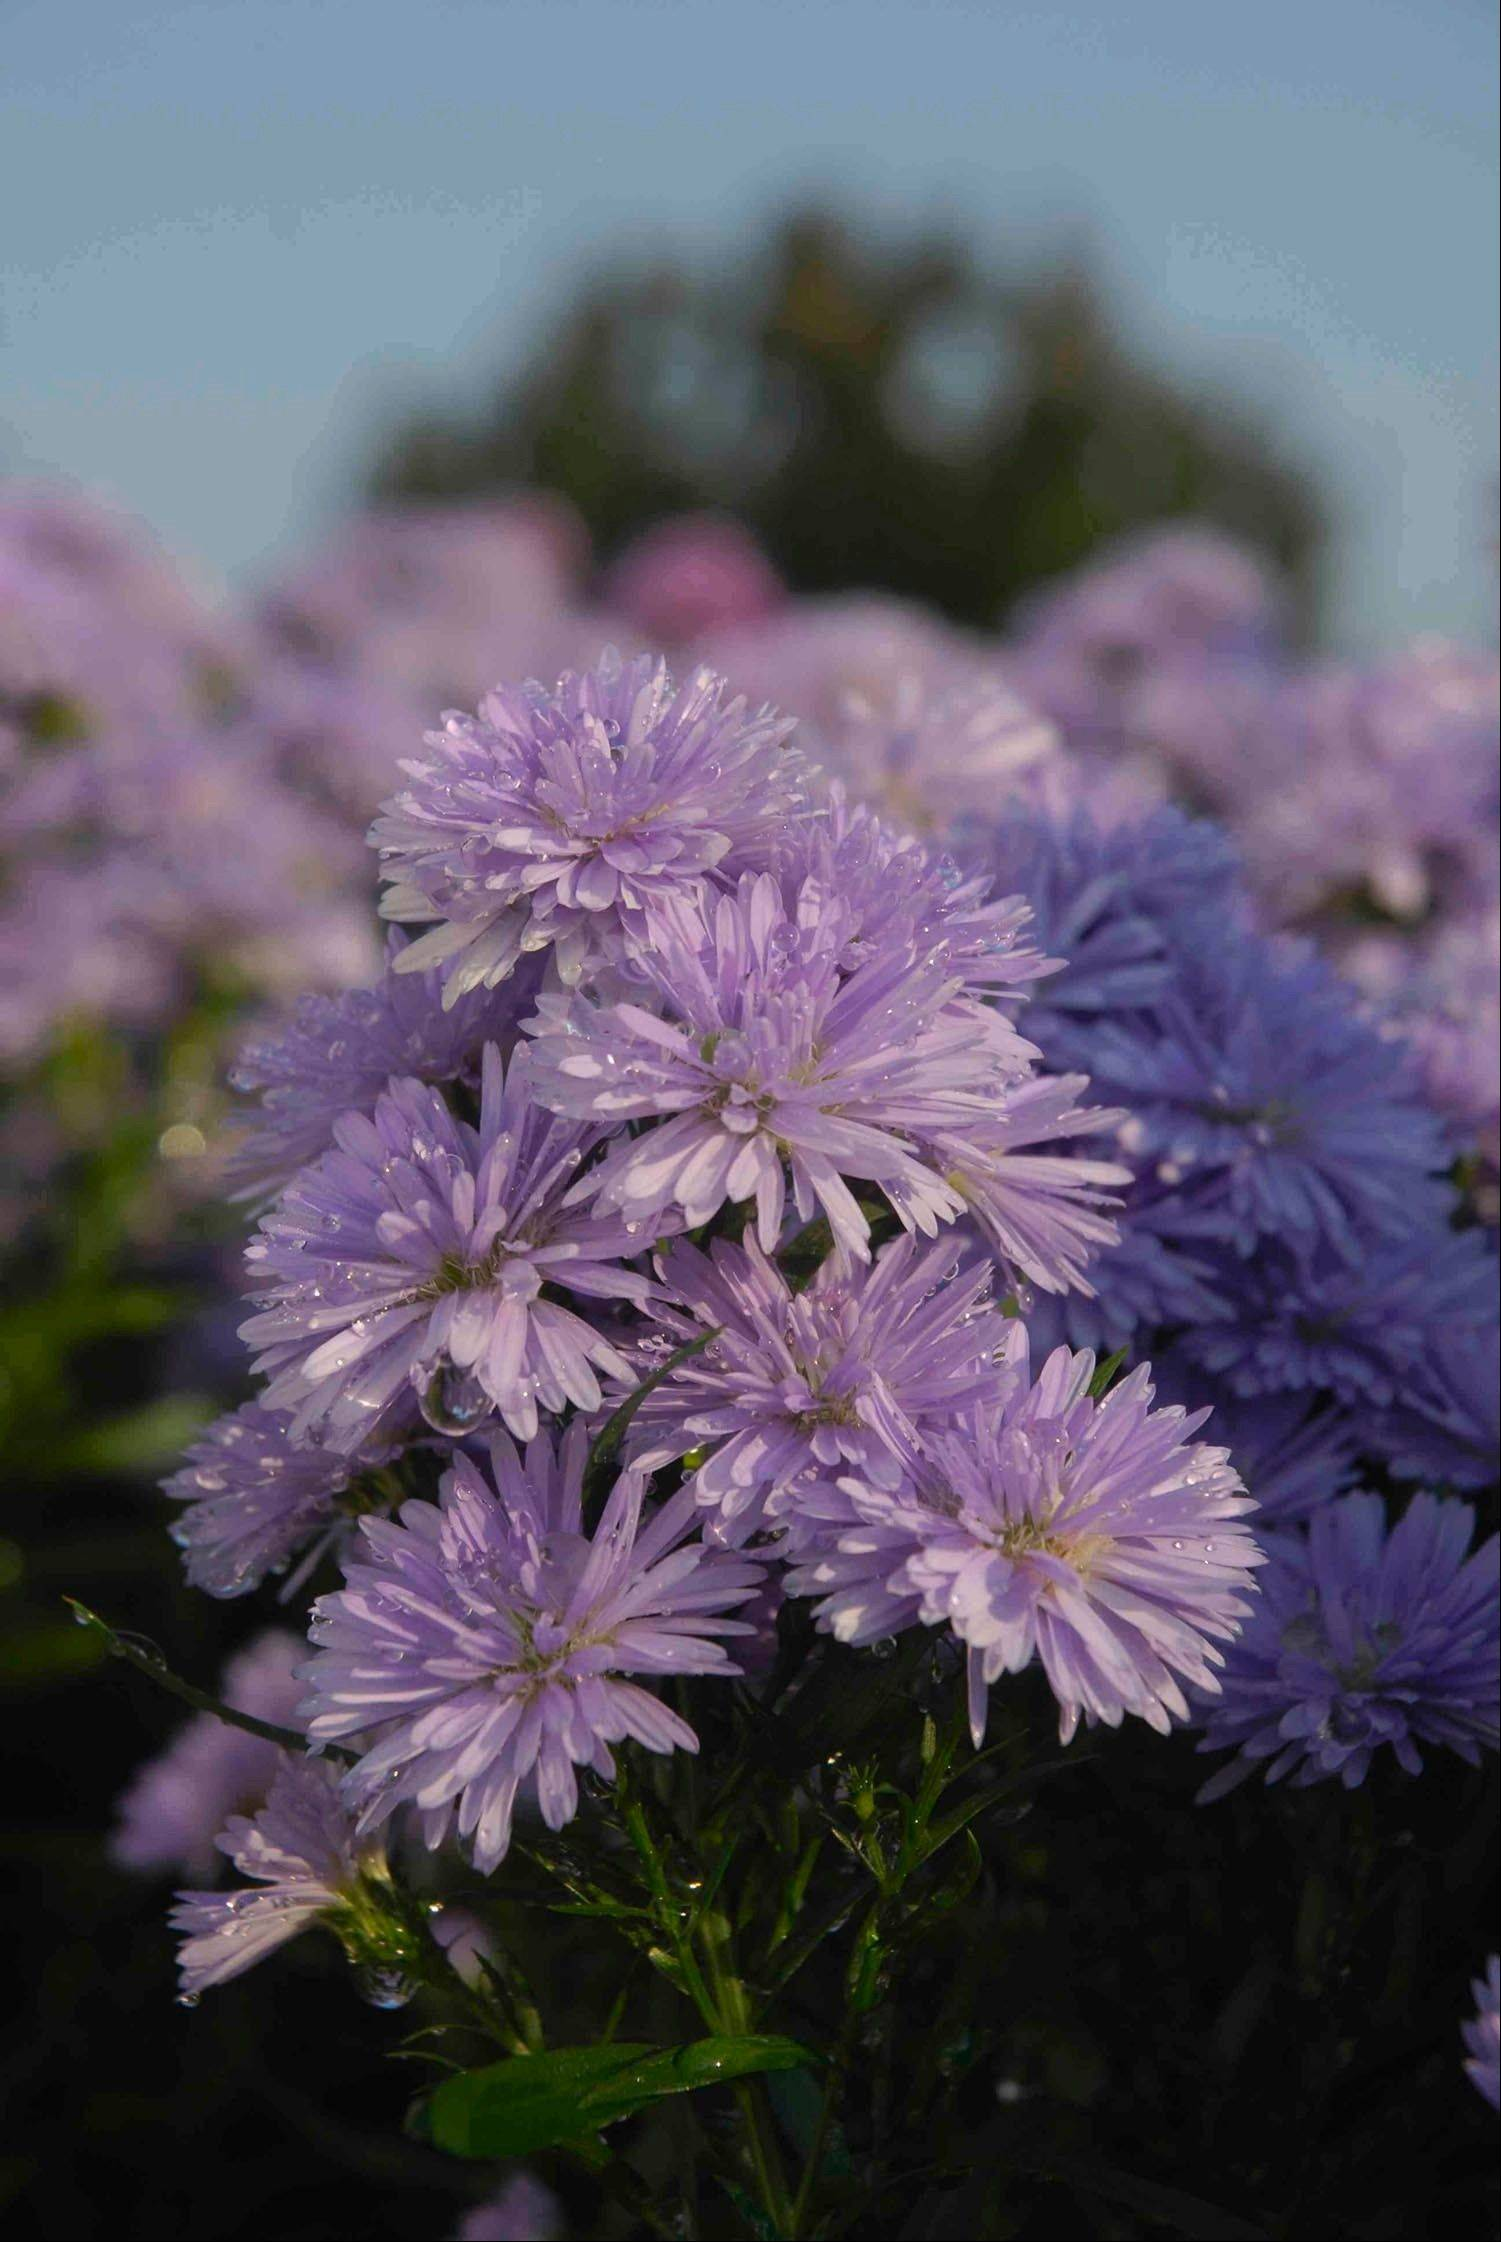 Asters, like mums, will last for 4-6 weeks, depending on the weather.